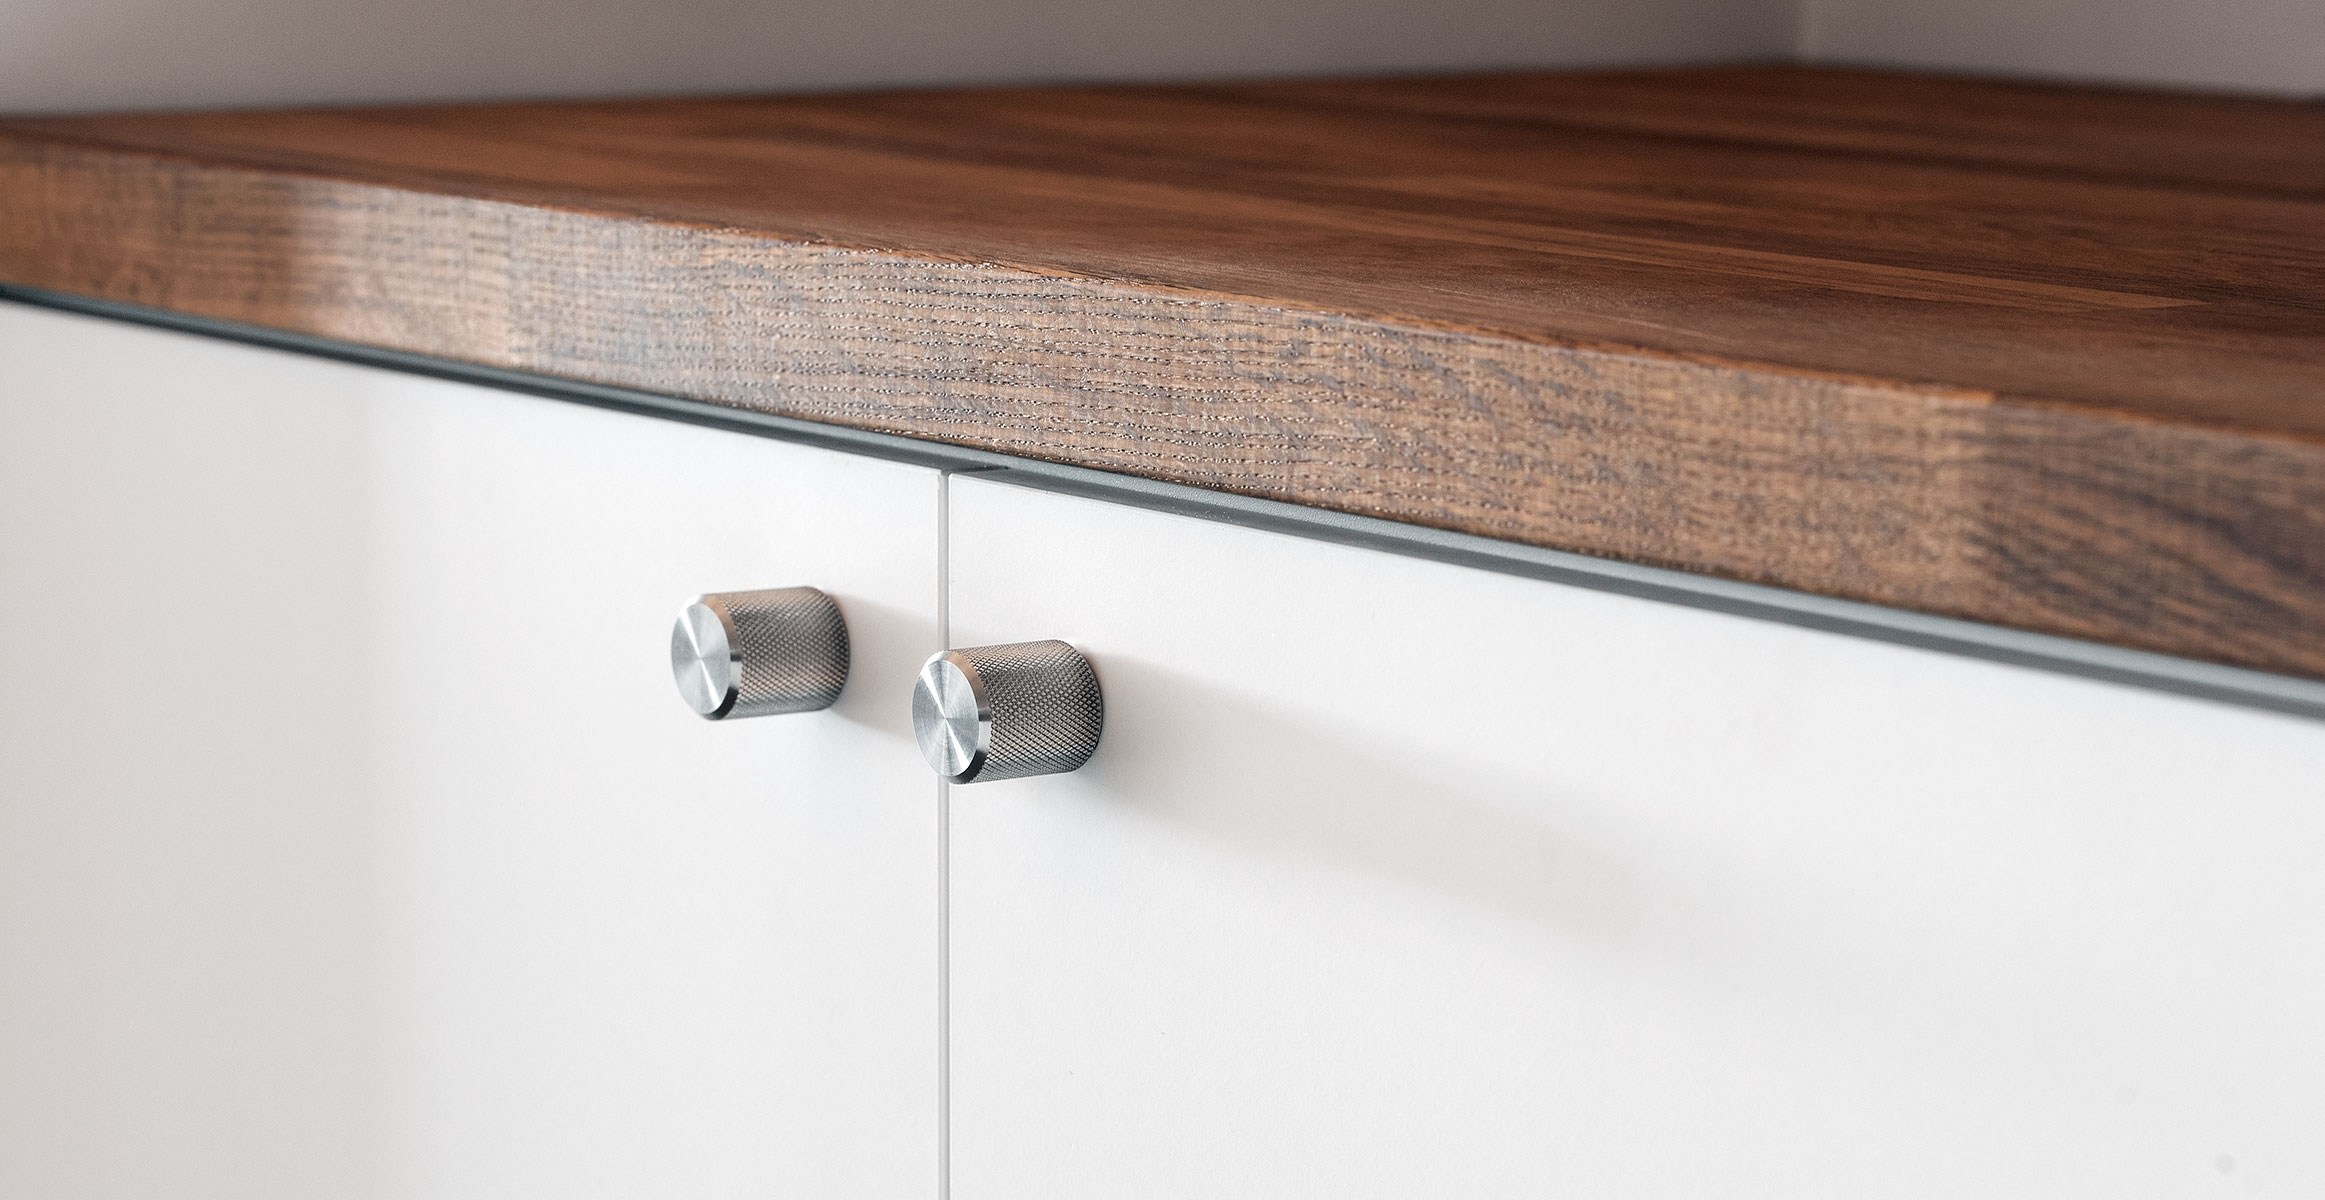 Kitchen cabinet featuring the Kor Cabinet Knob in Stainless Steel finish